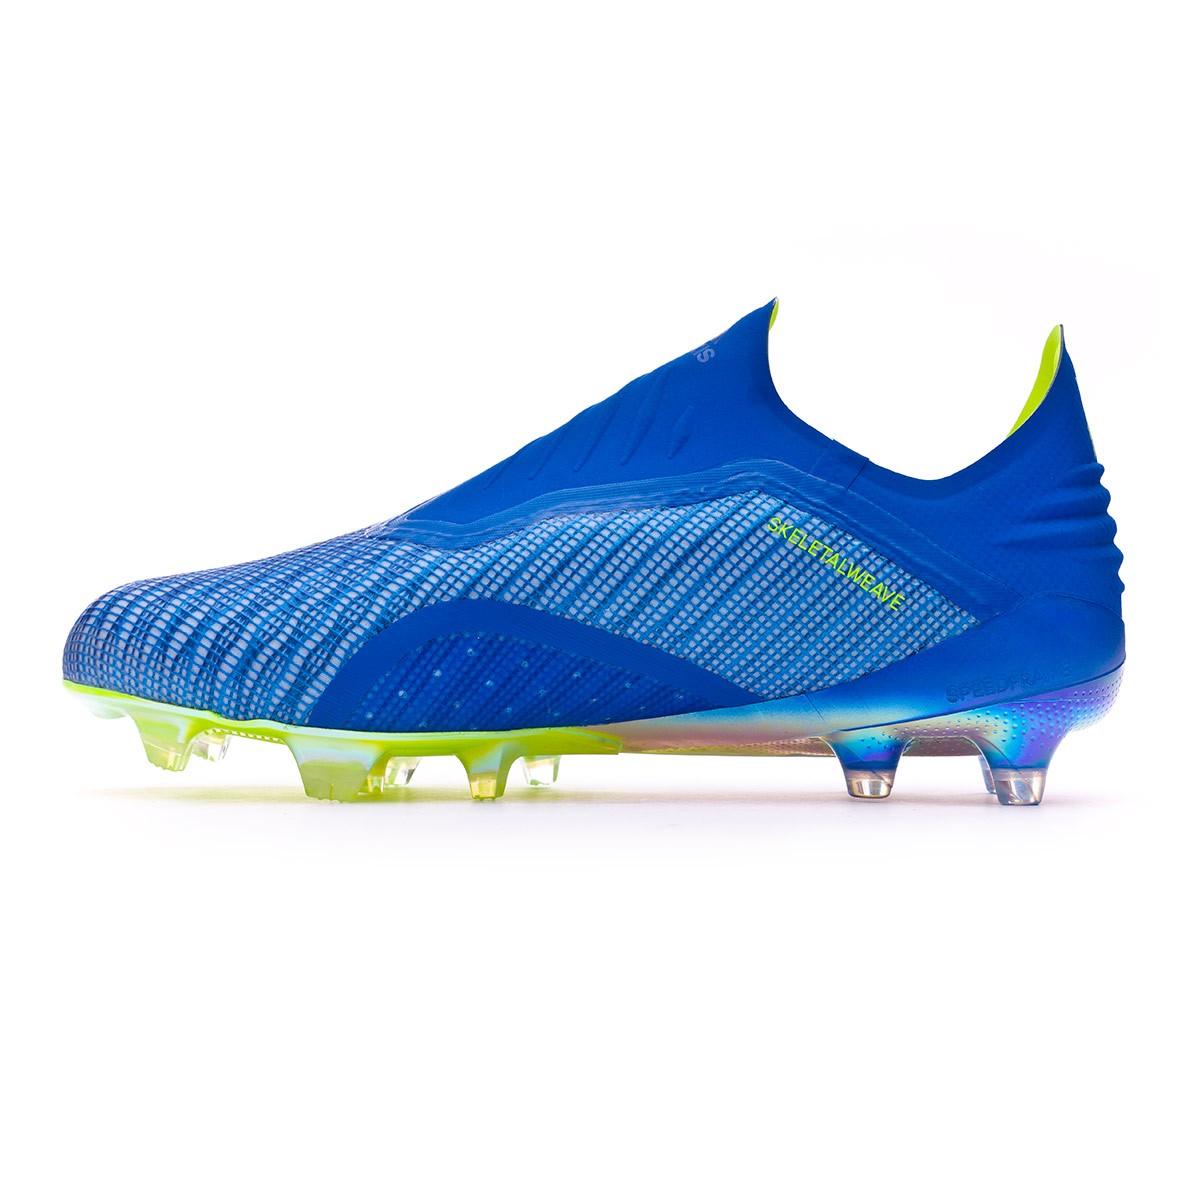 official photos 8ad61 470e5 Chaussure de foot adidas X 18+ FG Foot blue-Solar yellow-Black - Boutique  de football Fútbol Emotion